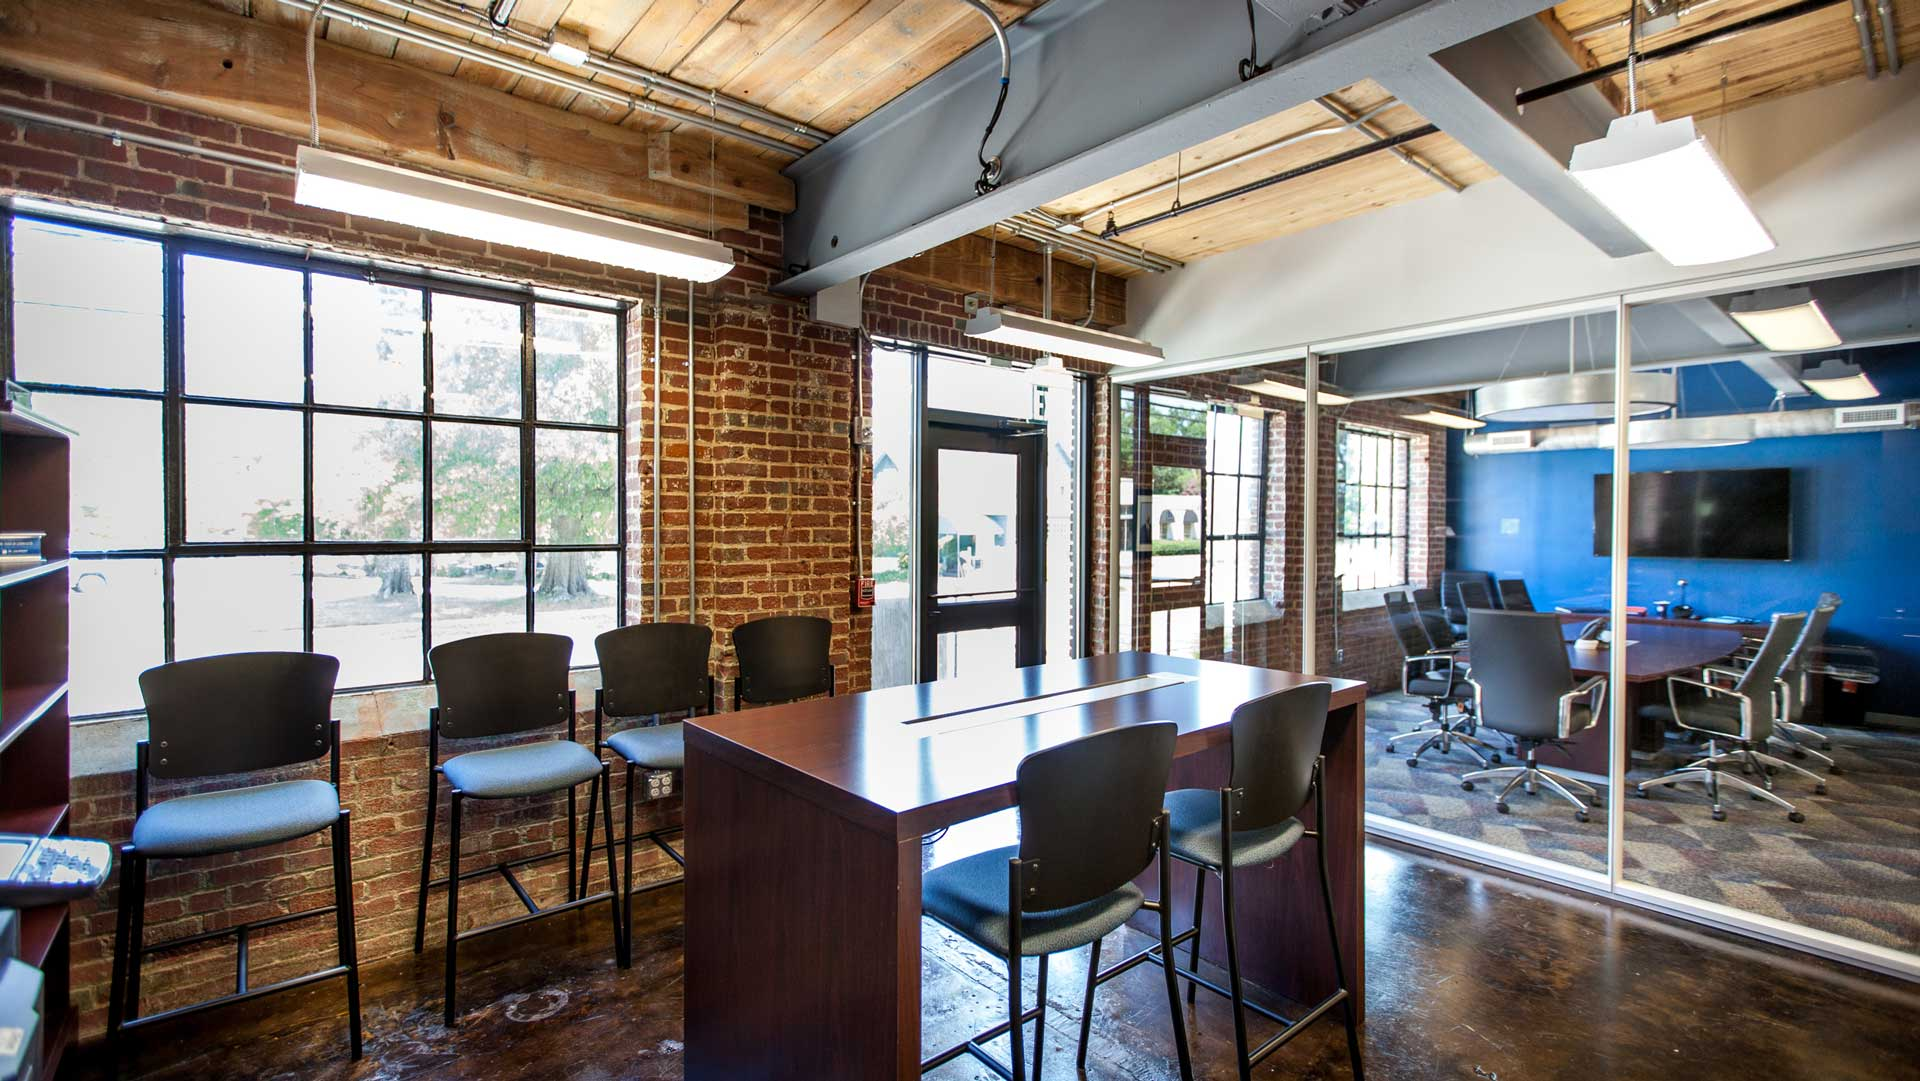 Claussen Bakery, Adapative Reuse, Office Tenant Space Ground Floor